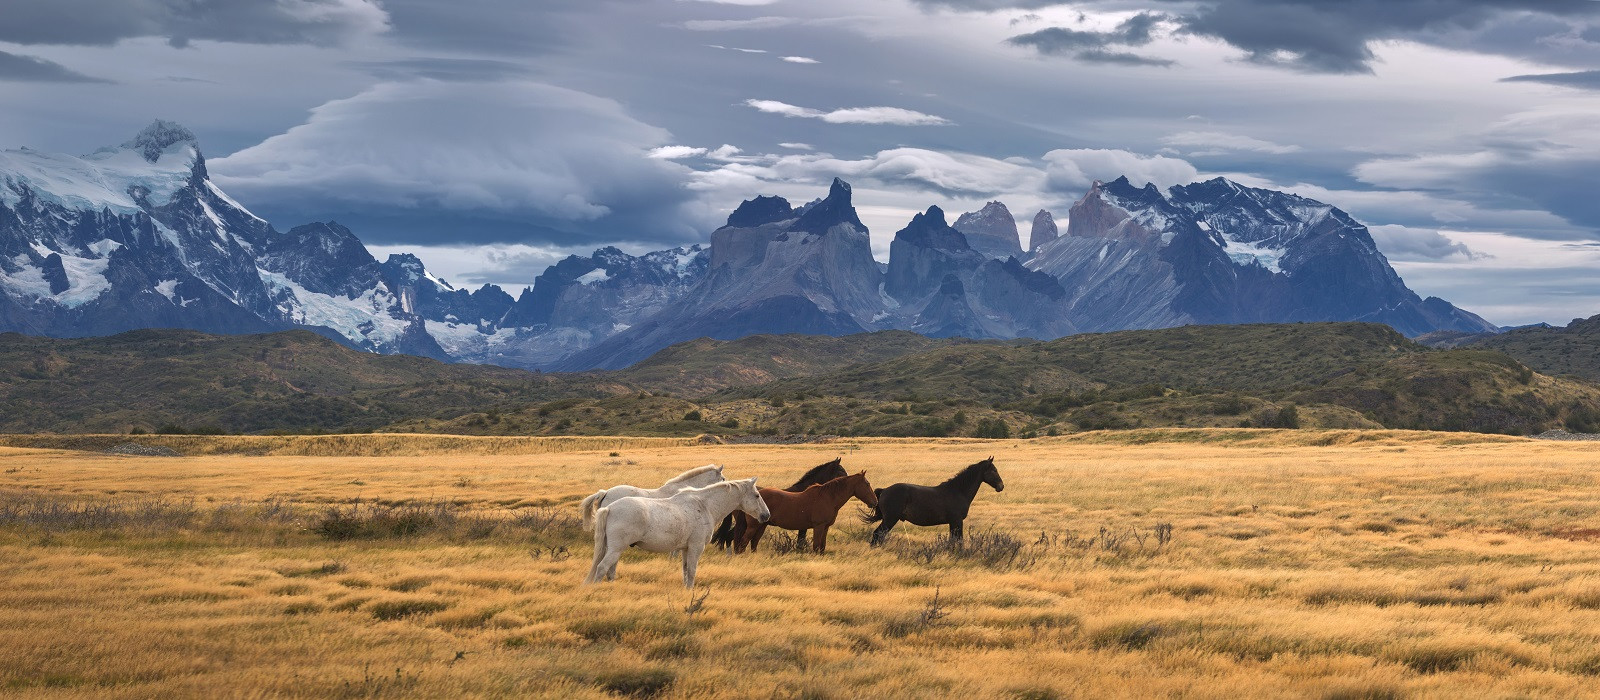 Things to do in South America - Patagonia